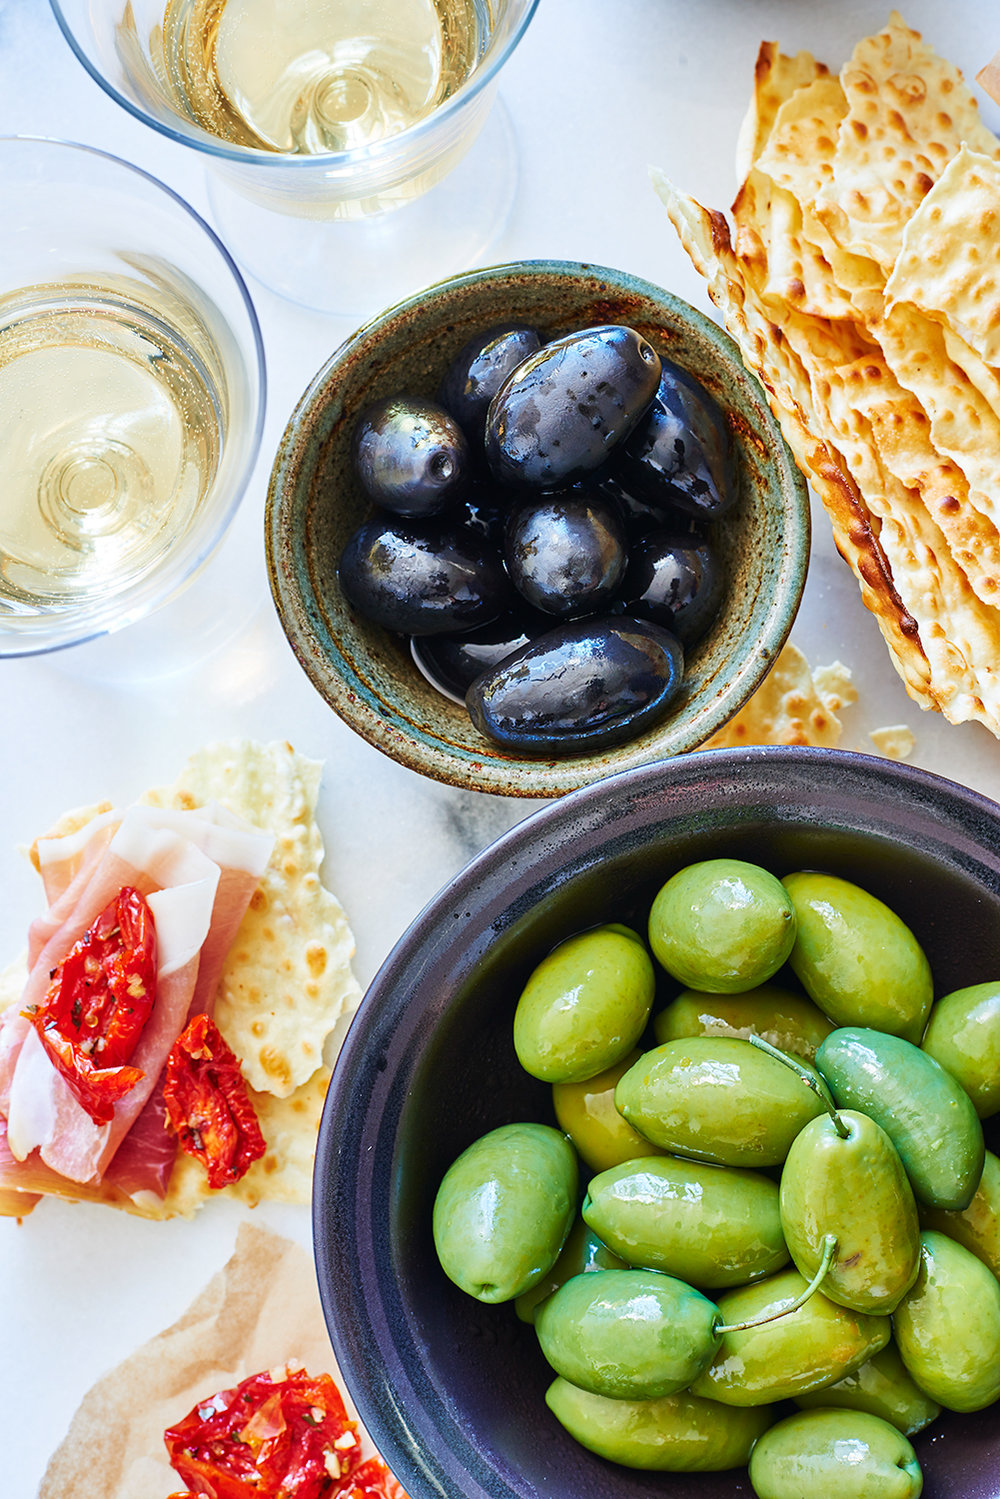 12_Olives-Wine_0233_original.jpg